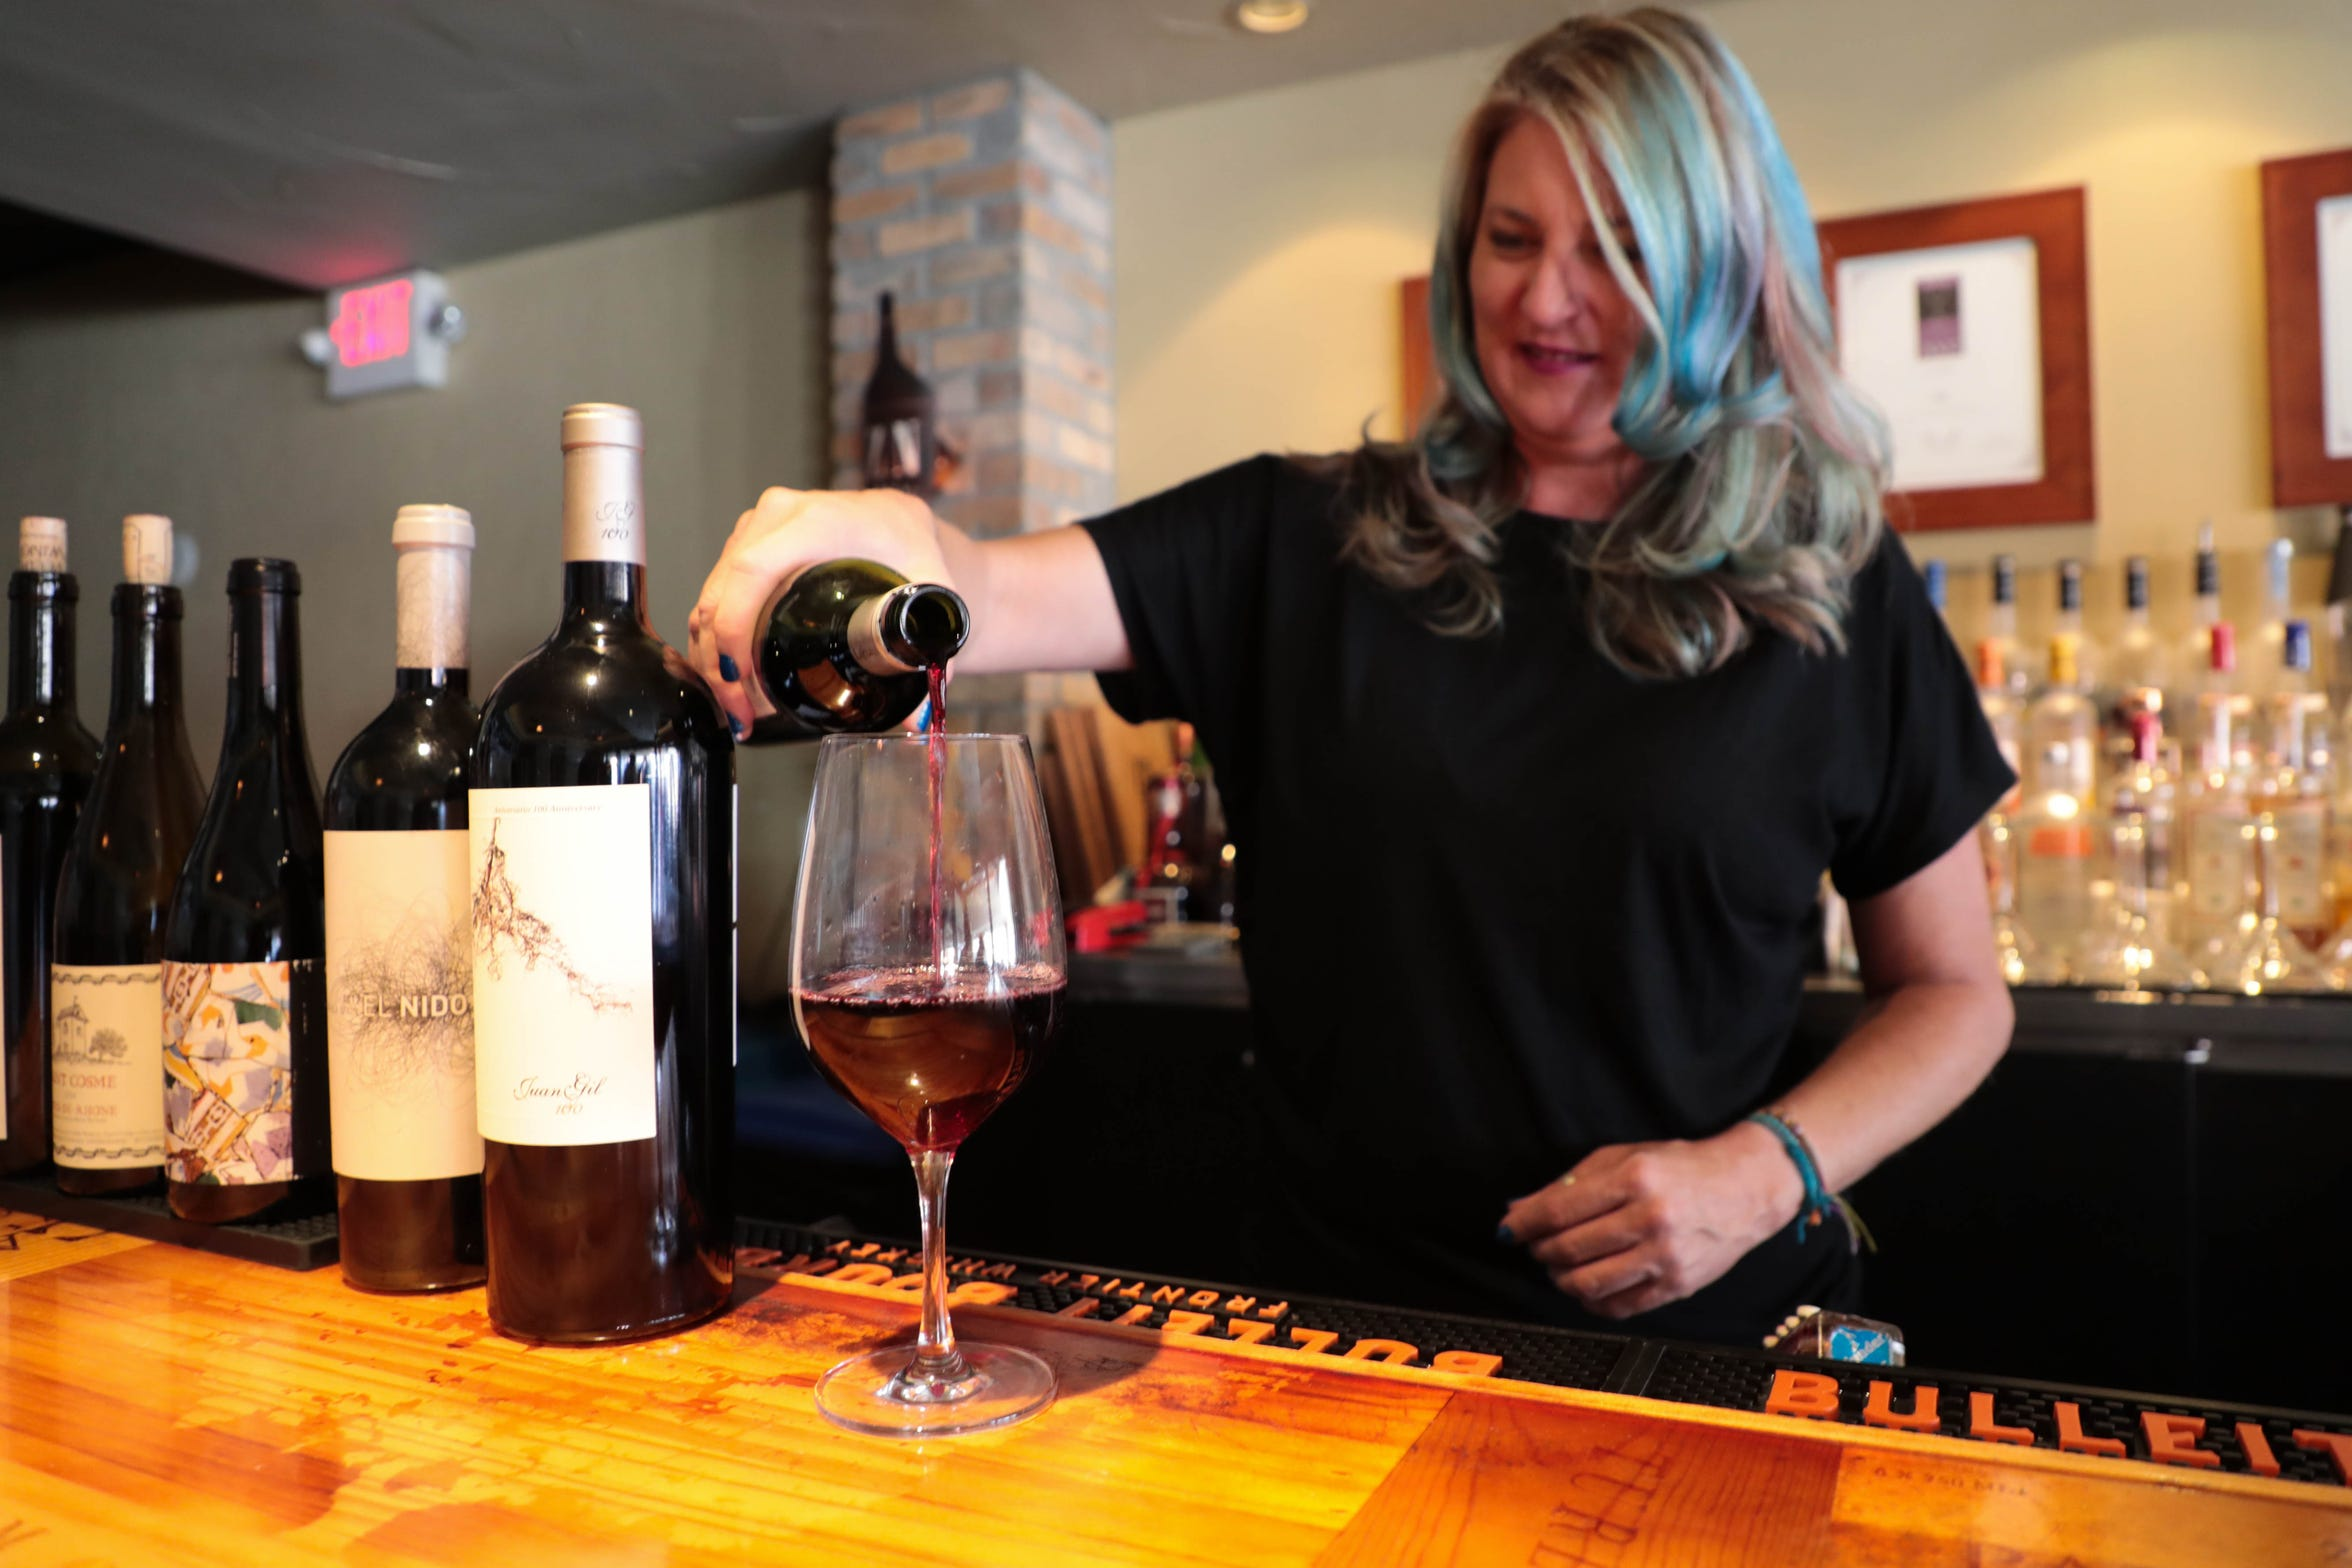 Mindy Reed, owner of Zin American Bistro, pours wine on Thursday, October 18, 2018 in Palm Springs, Calif.